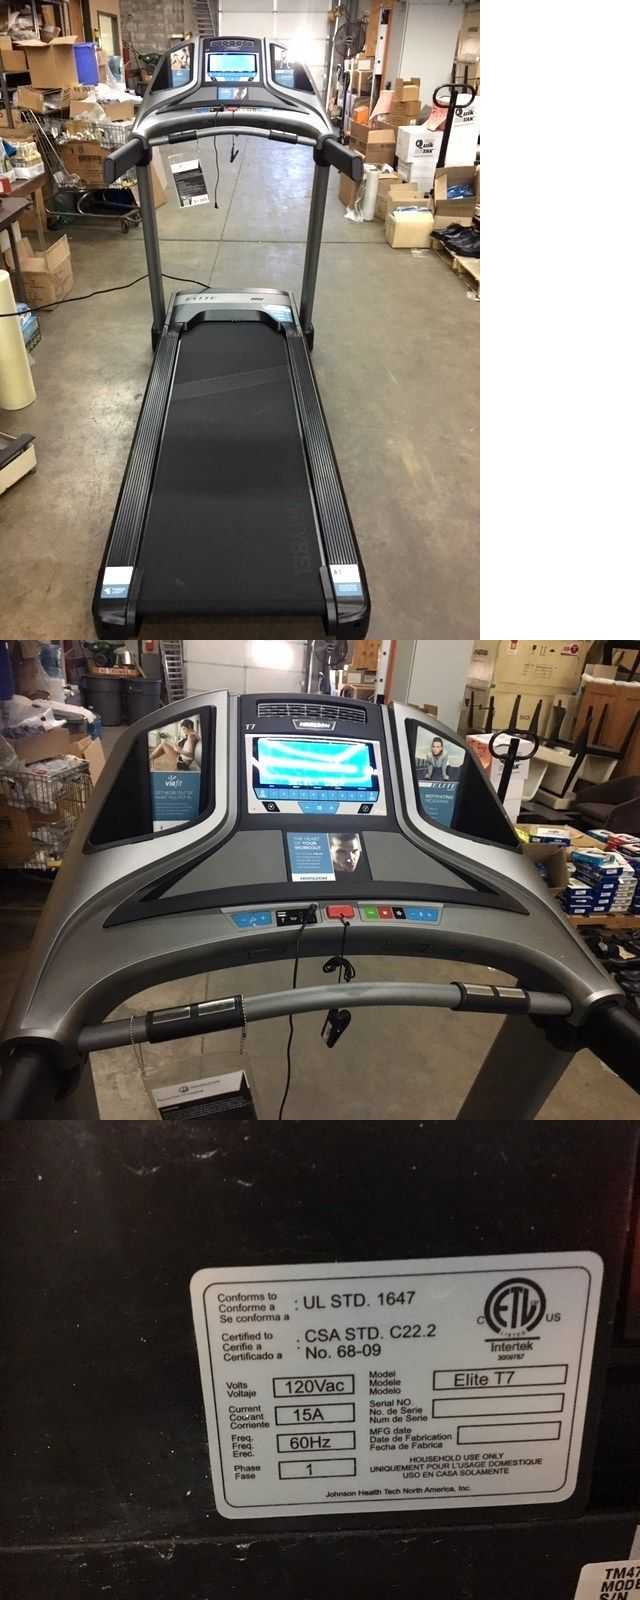 Treadmills 15280: Horizon Fitness Elite T7 Foldable Treadmill -> BUY IT NOW ONLY: $1100 on eBay!